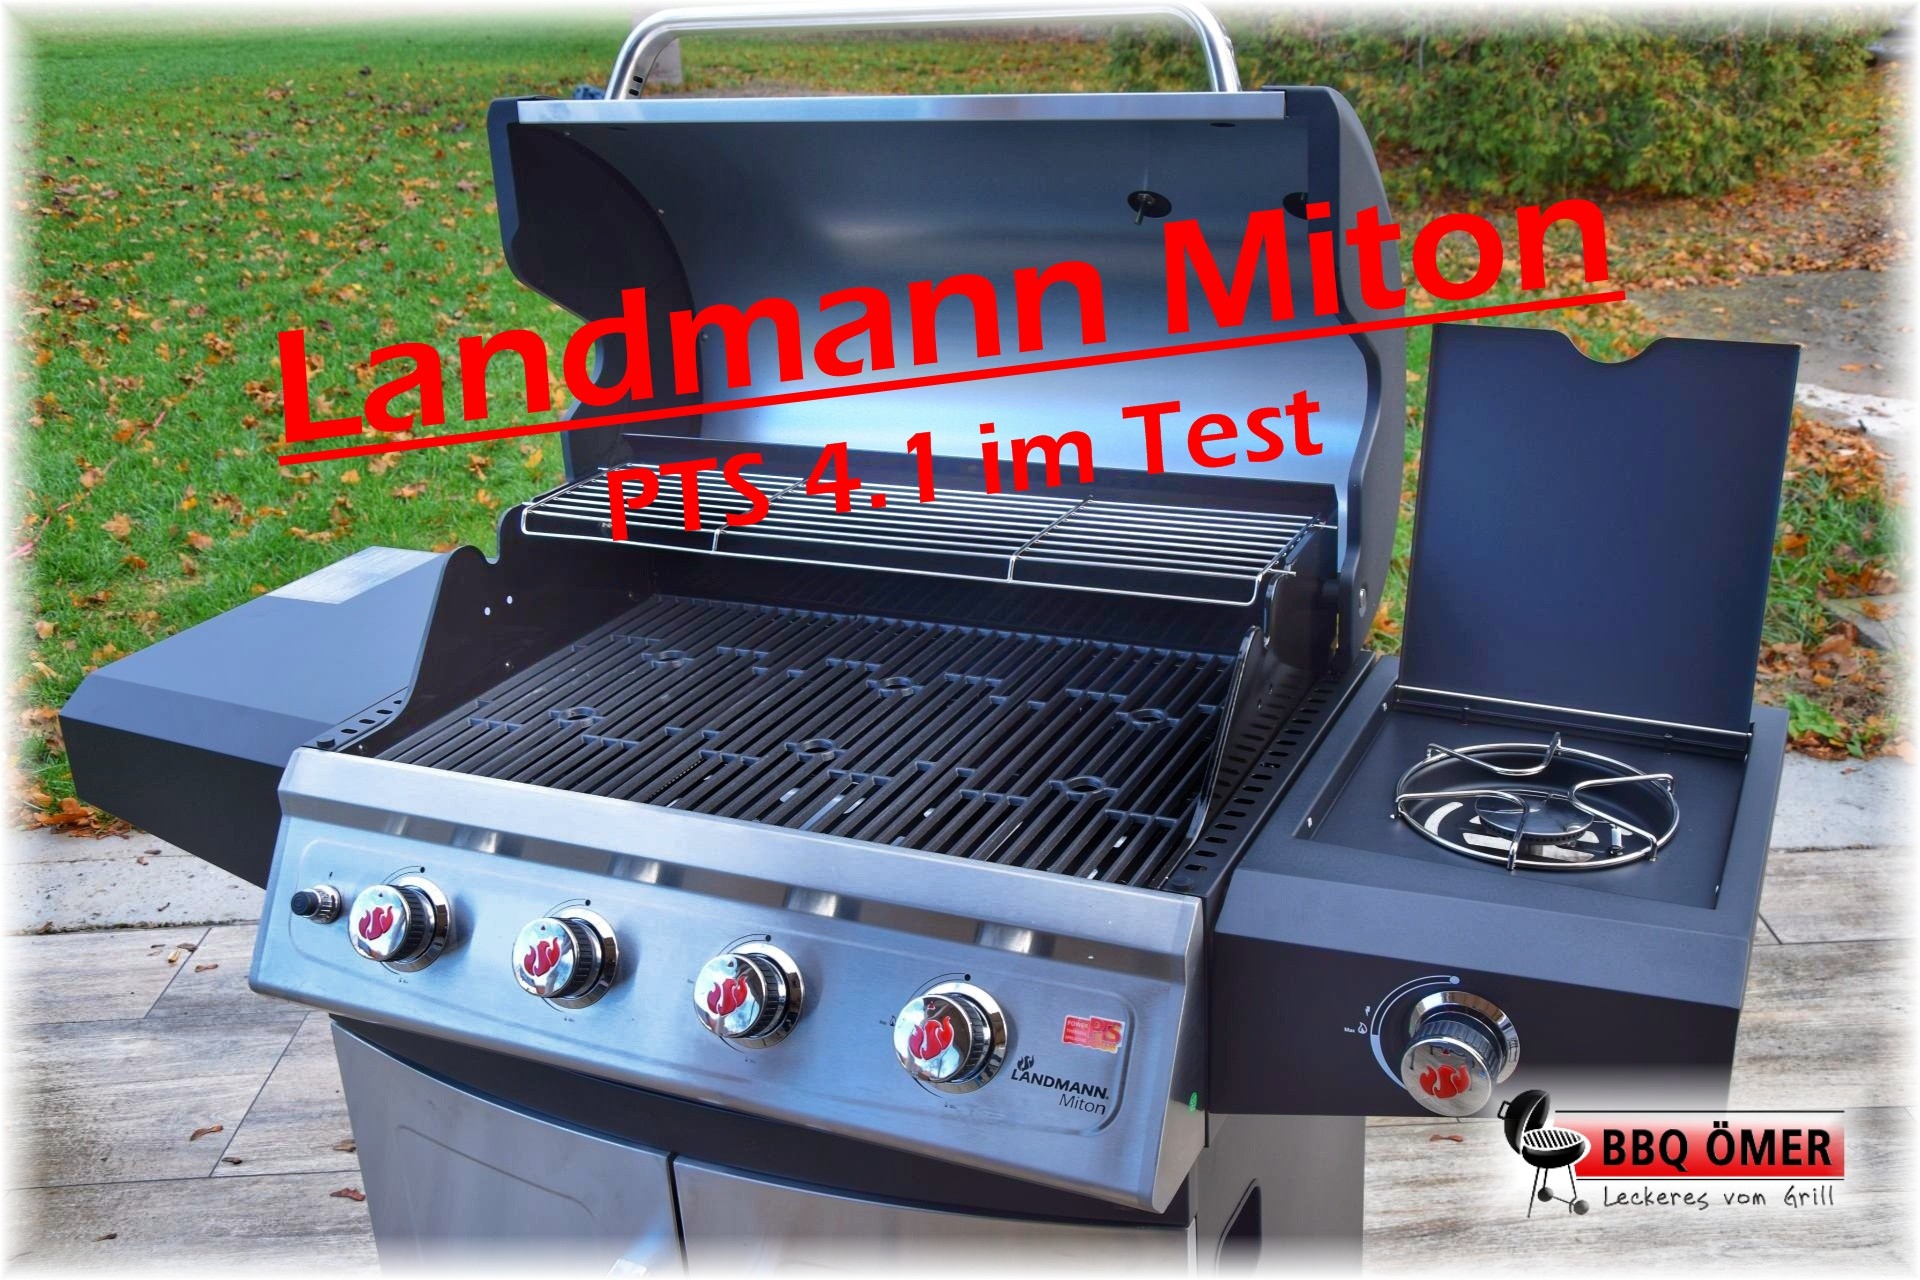 Landmann Gasgrill Zubehör : Landmann miton pts 4.1 im test the american way bbq Ömer